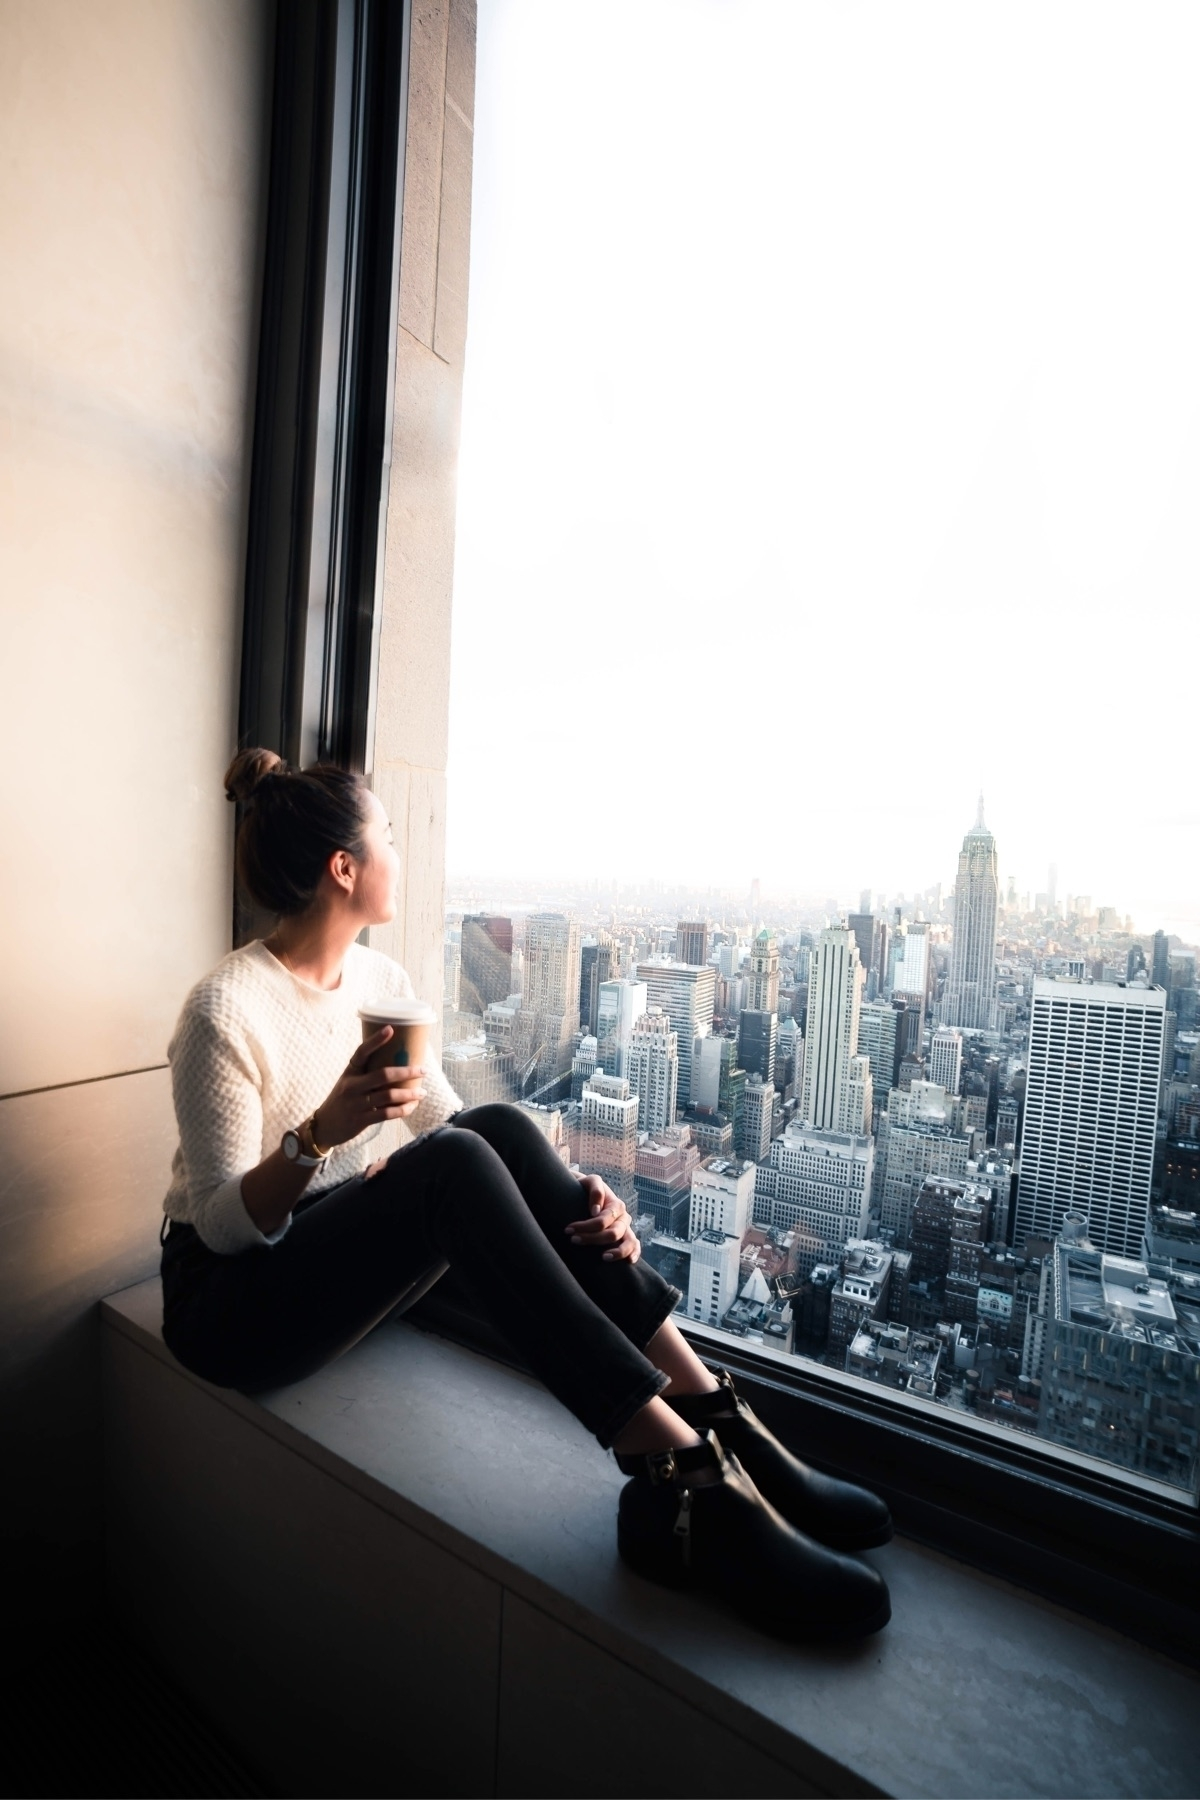 NY Views - newyork, views, portrait - lasfotosdexus | ello